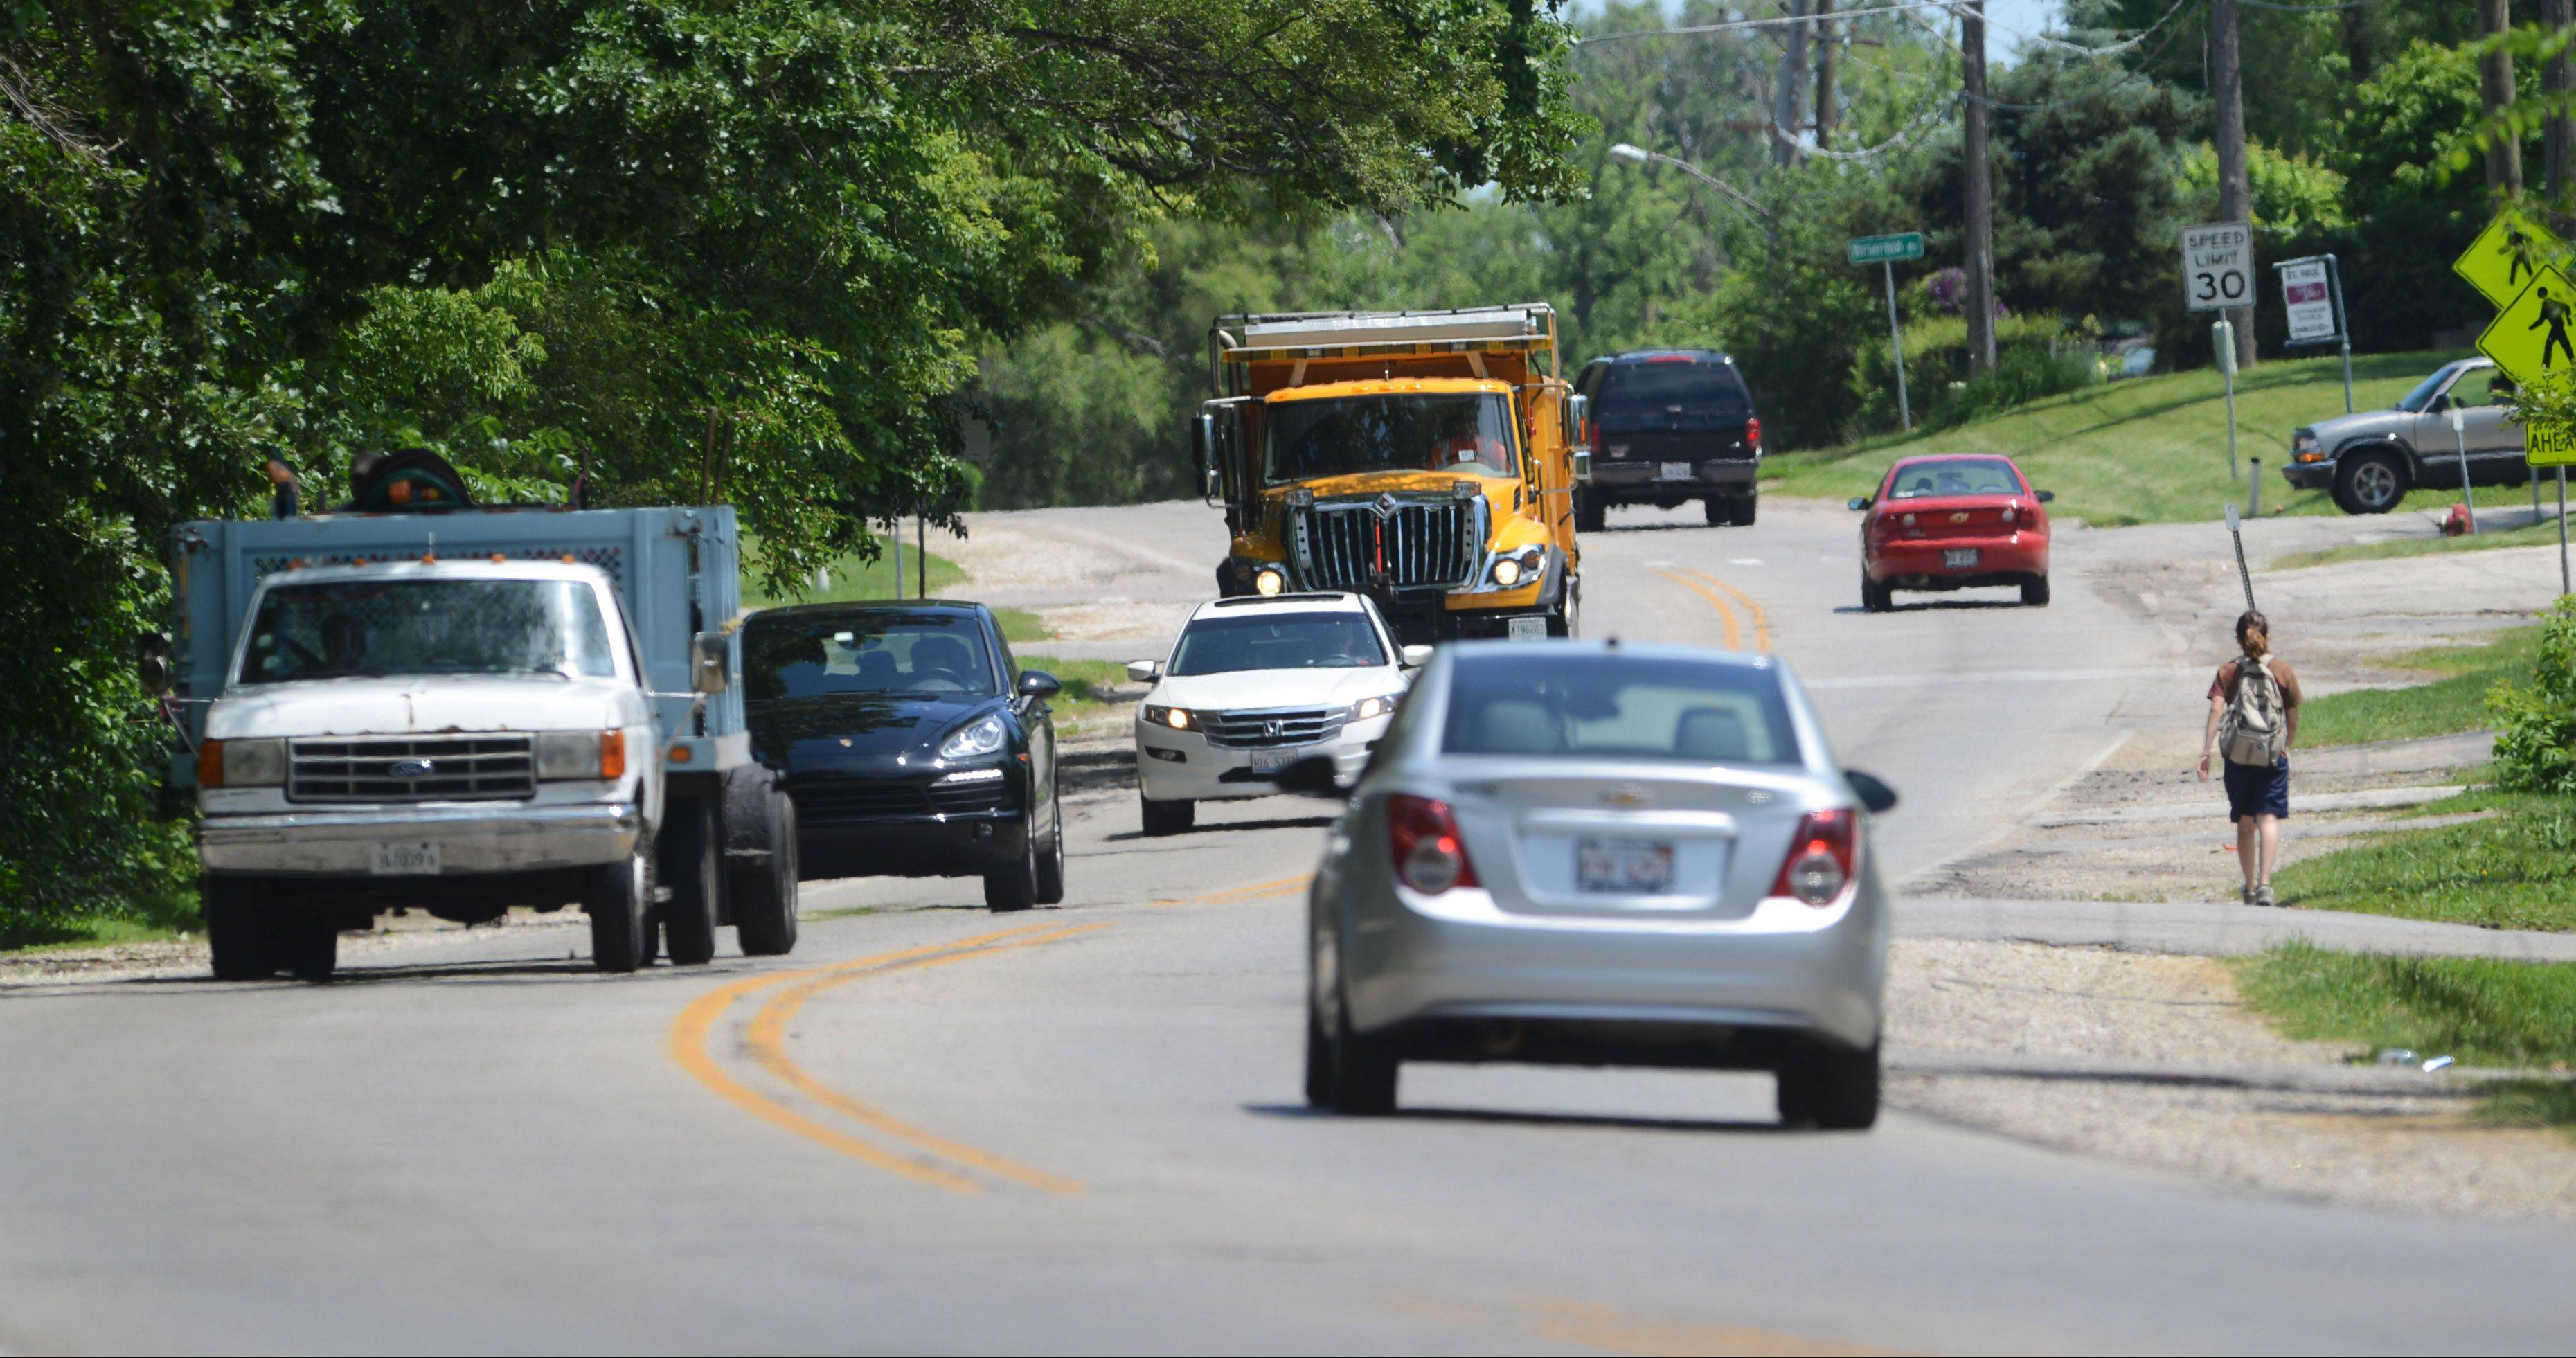 Washington Street between Hainesville and Cedar Lake roads will be widened to three lanes this summer. Construction scheduled to begin early next month also includes bike lanes, sidewalks, curb and gutters, and a new water main.